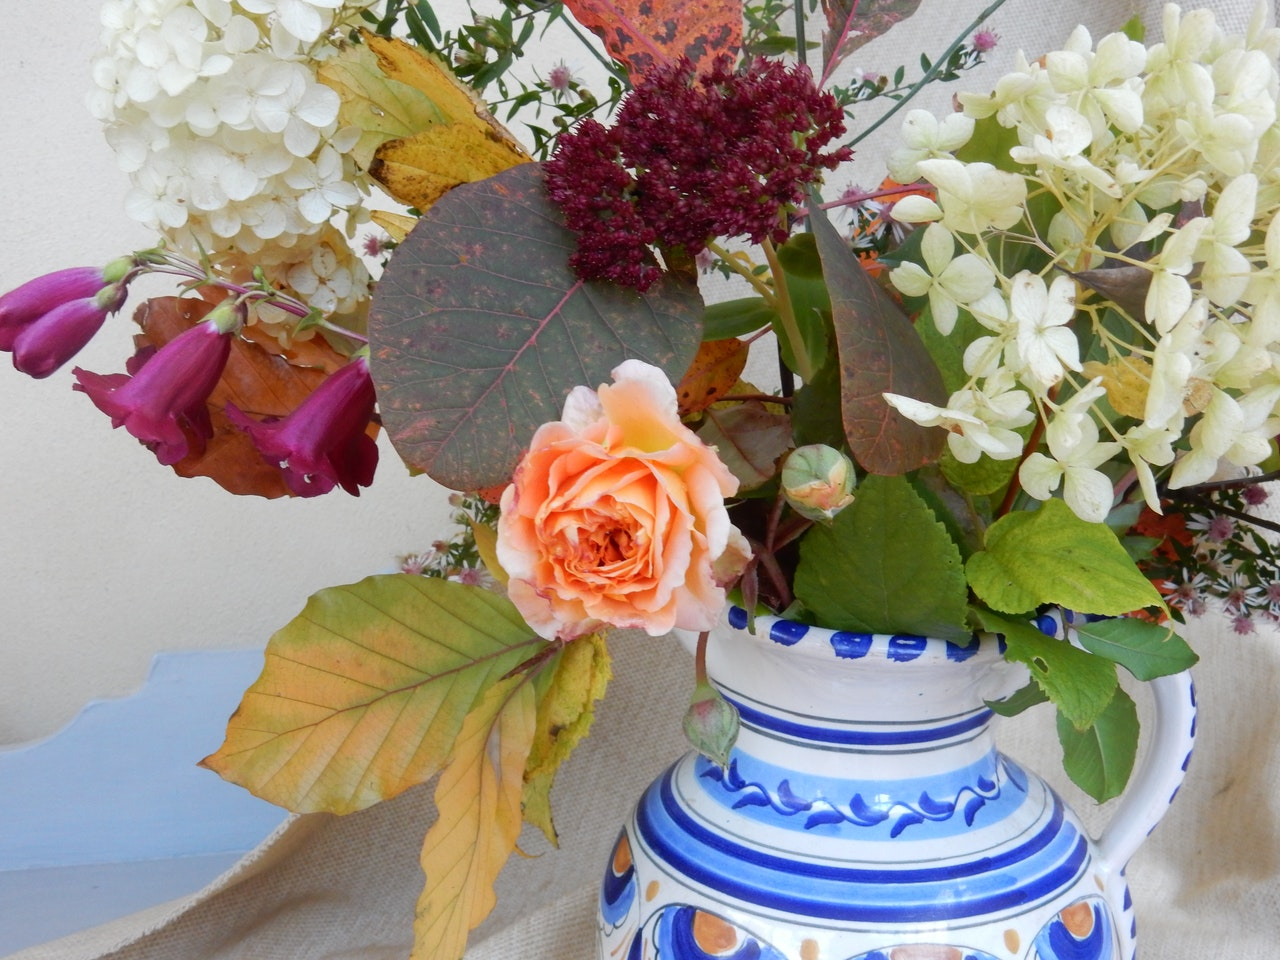 Autumn Flowers photo detail with Rose